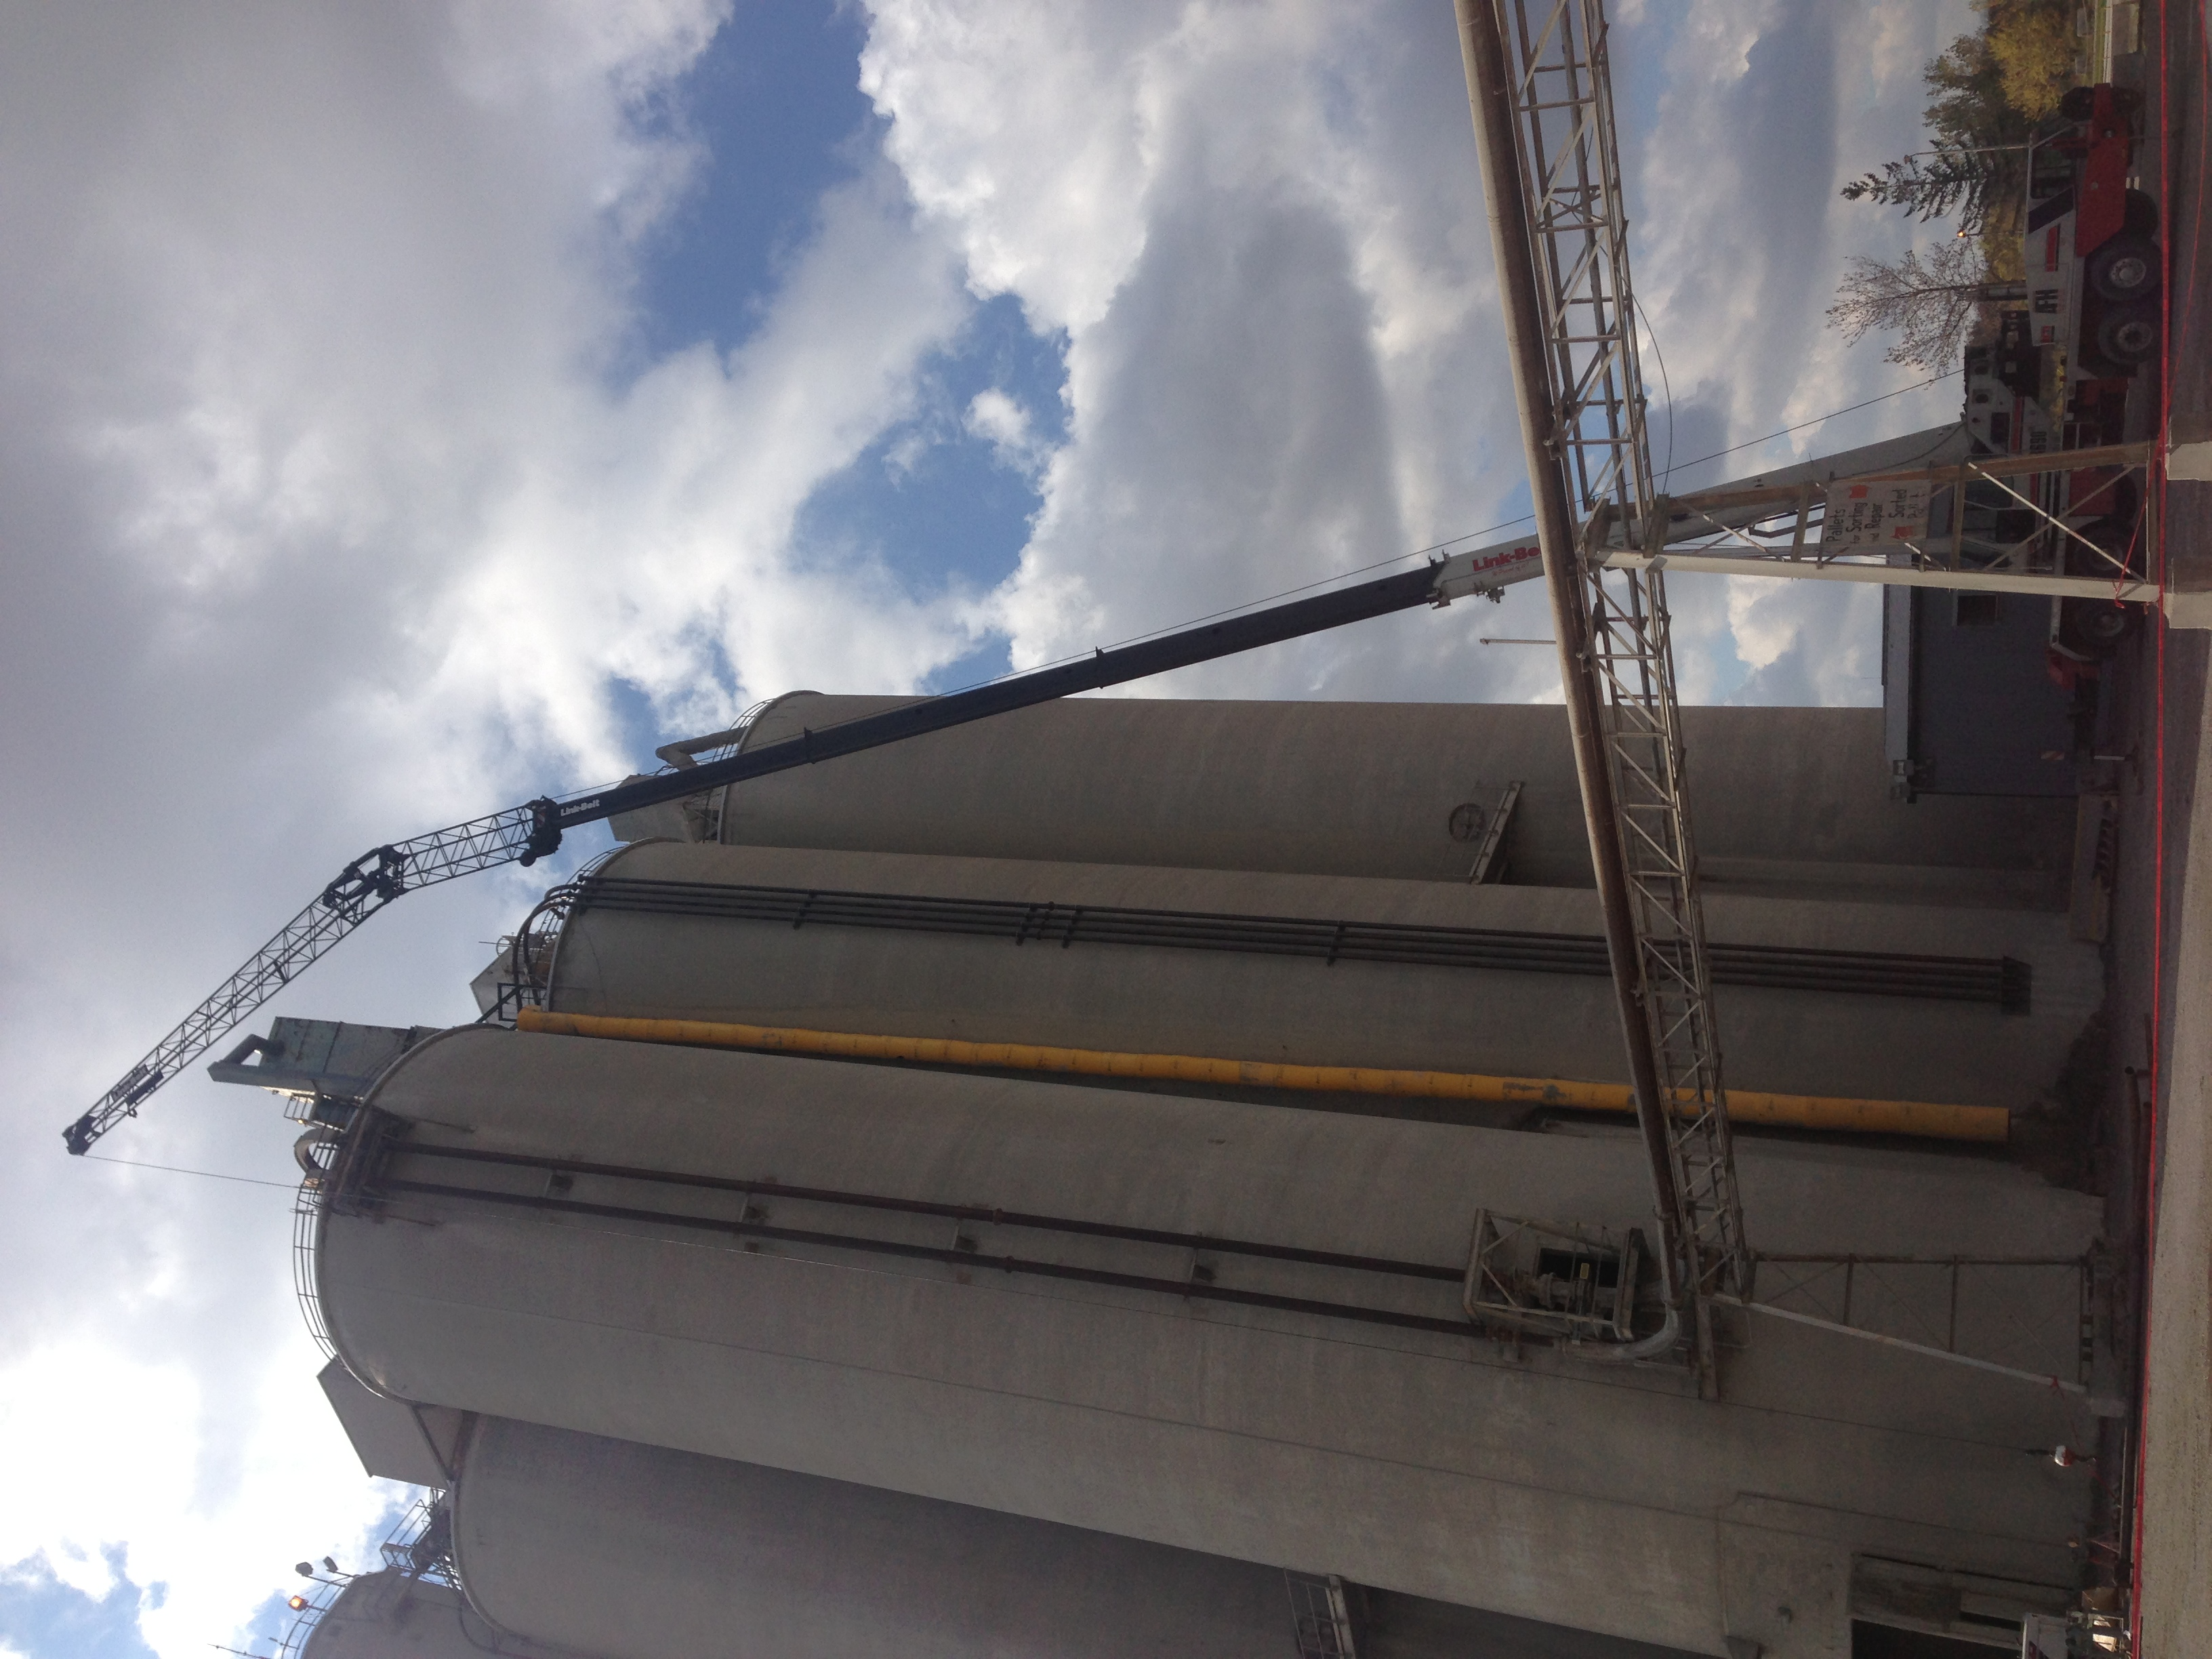 Steel pipe being lifted by mobile crane on silo roof